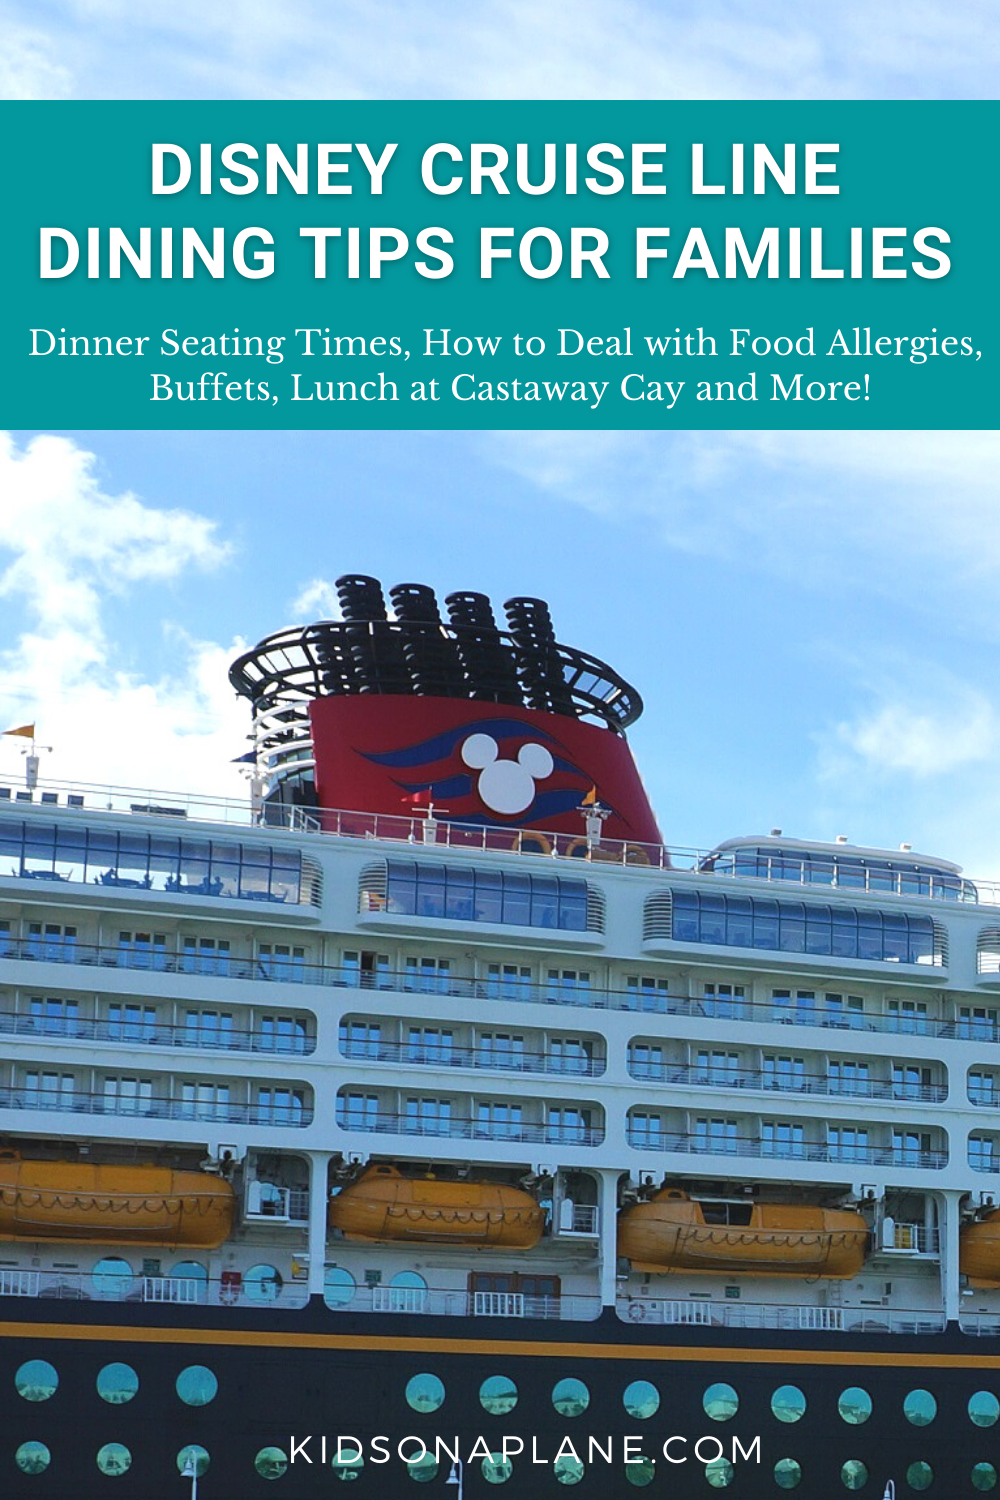 Disney Cruise Line Dining Tips for Families - Dealing with allergies dinner seating times buffets and Castaway Cay lunch